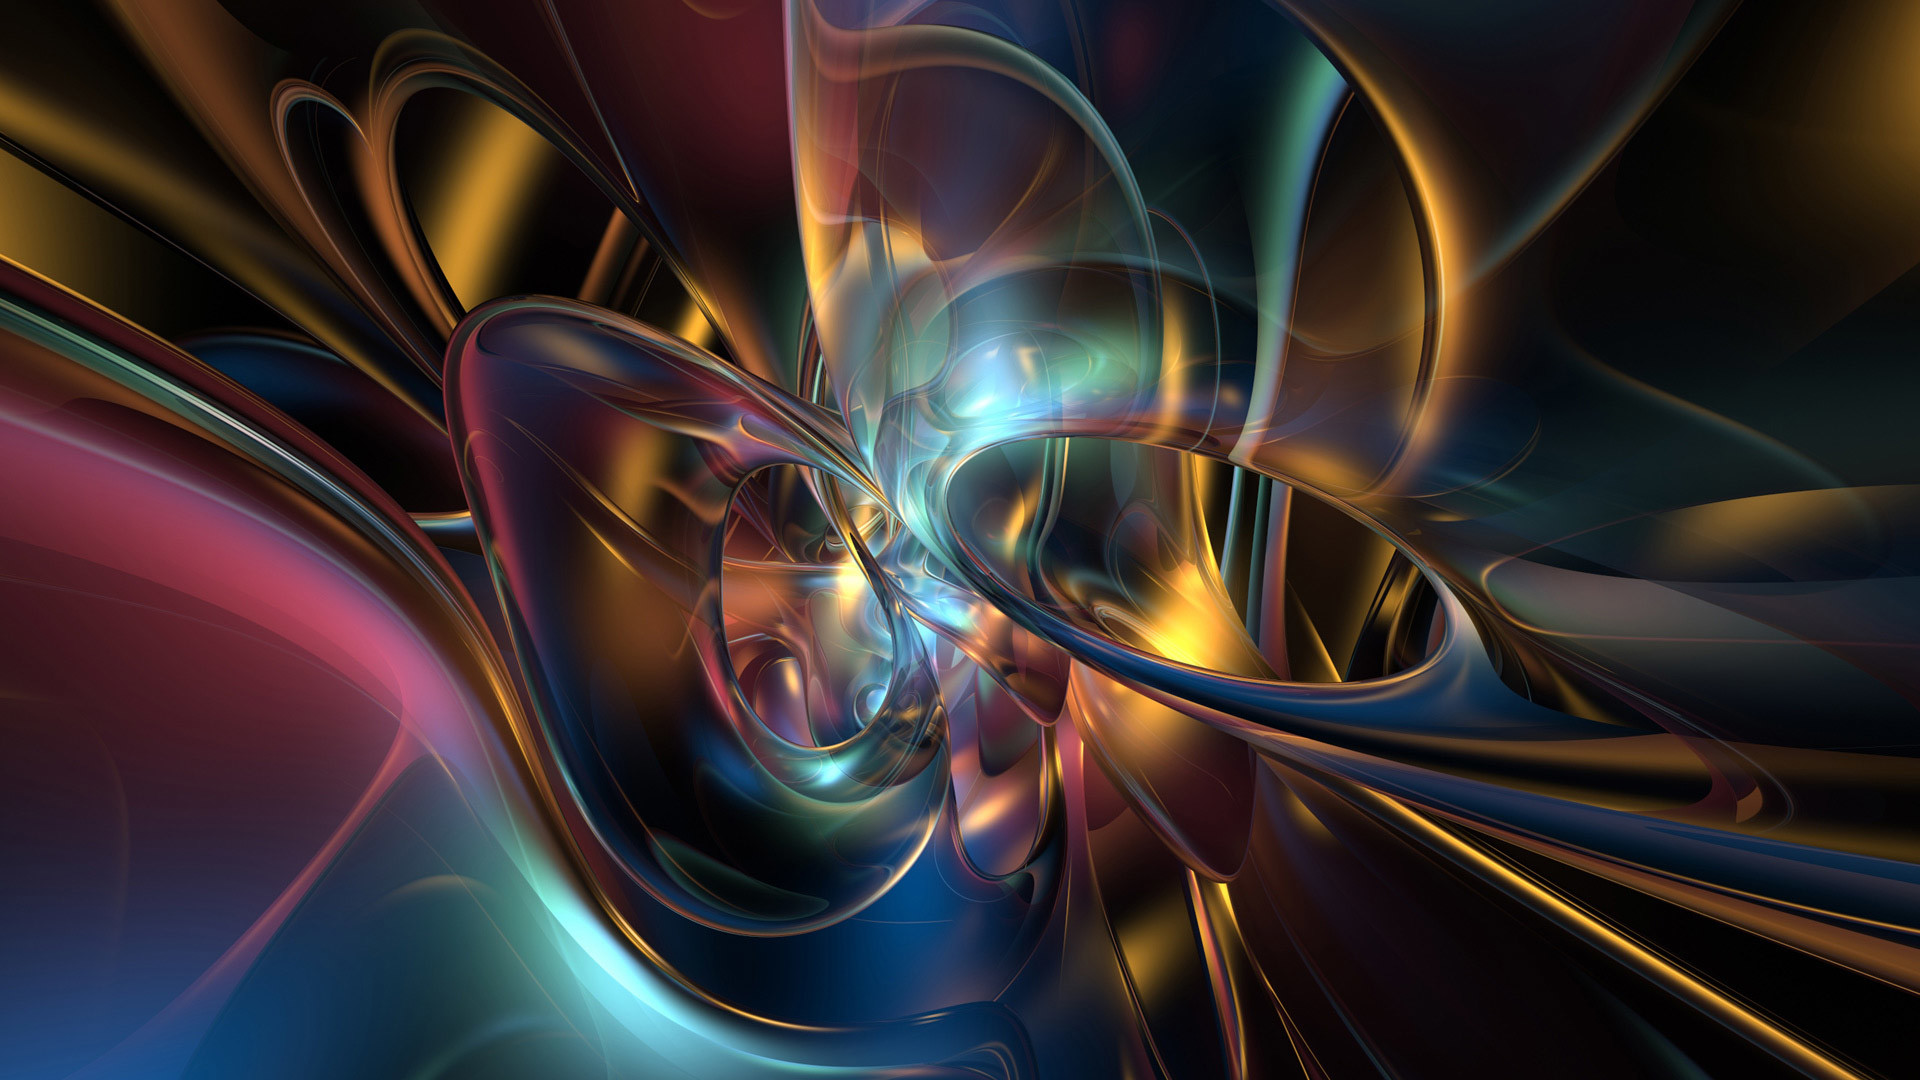 1920x1080 Awesome Abstract Trash Art Pattern Hd Wallpaper